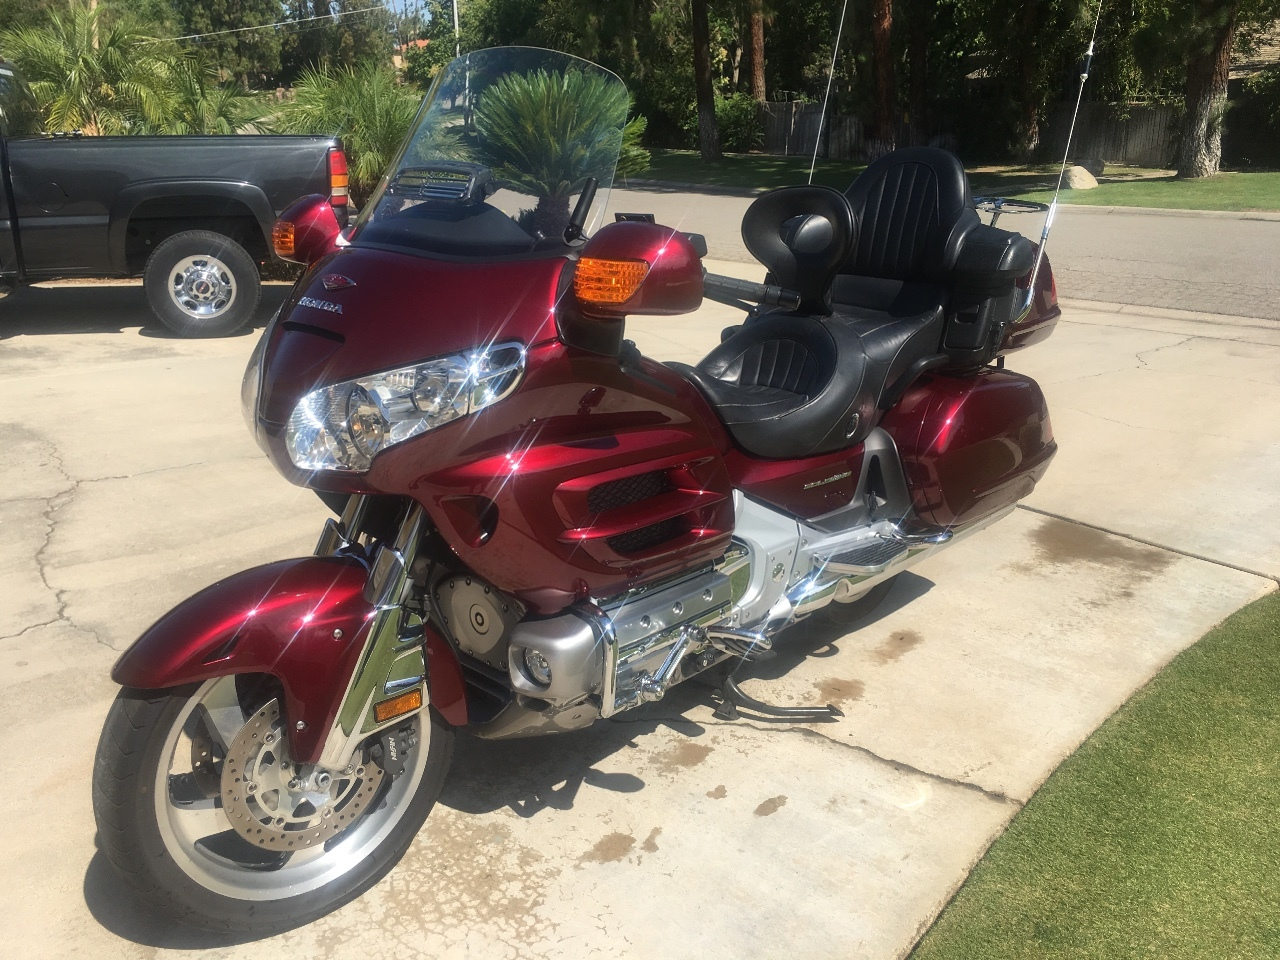 Gold Wing 1800 Abs For Sale - Honda Motorcycle,ATV Four ... Hannigan Side For Car Wiring Diagram on